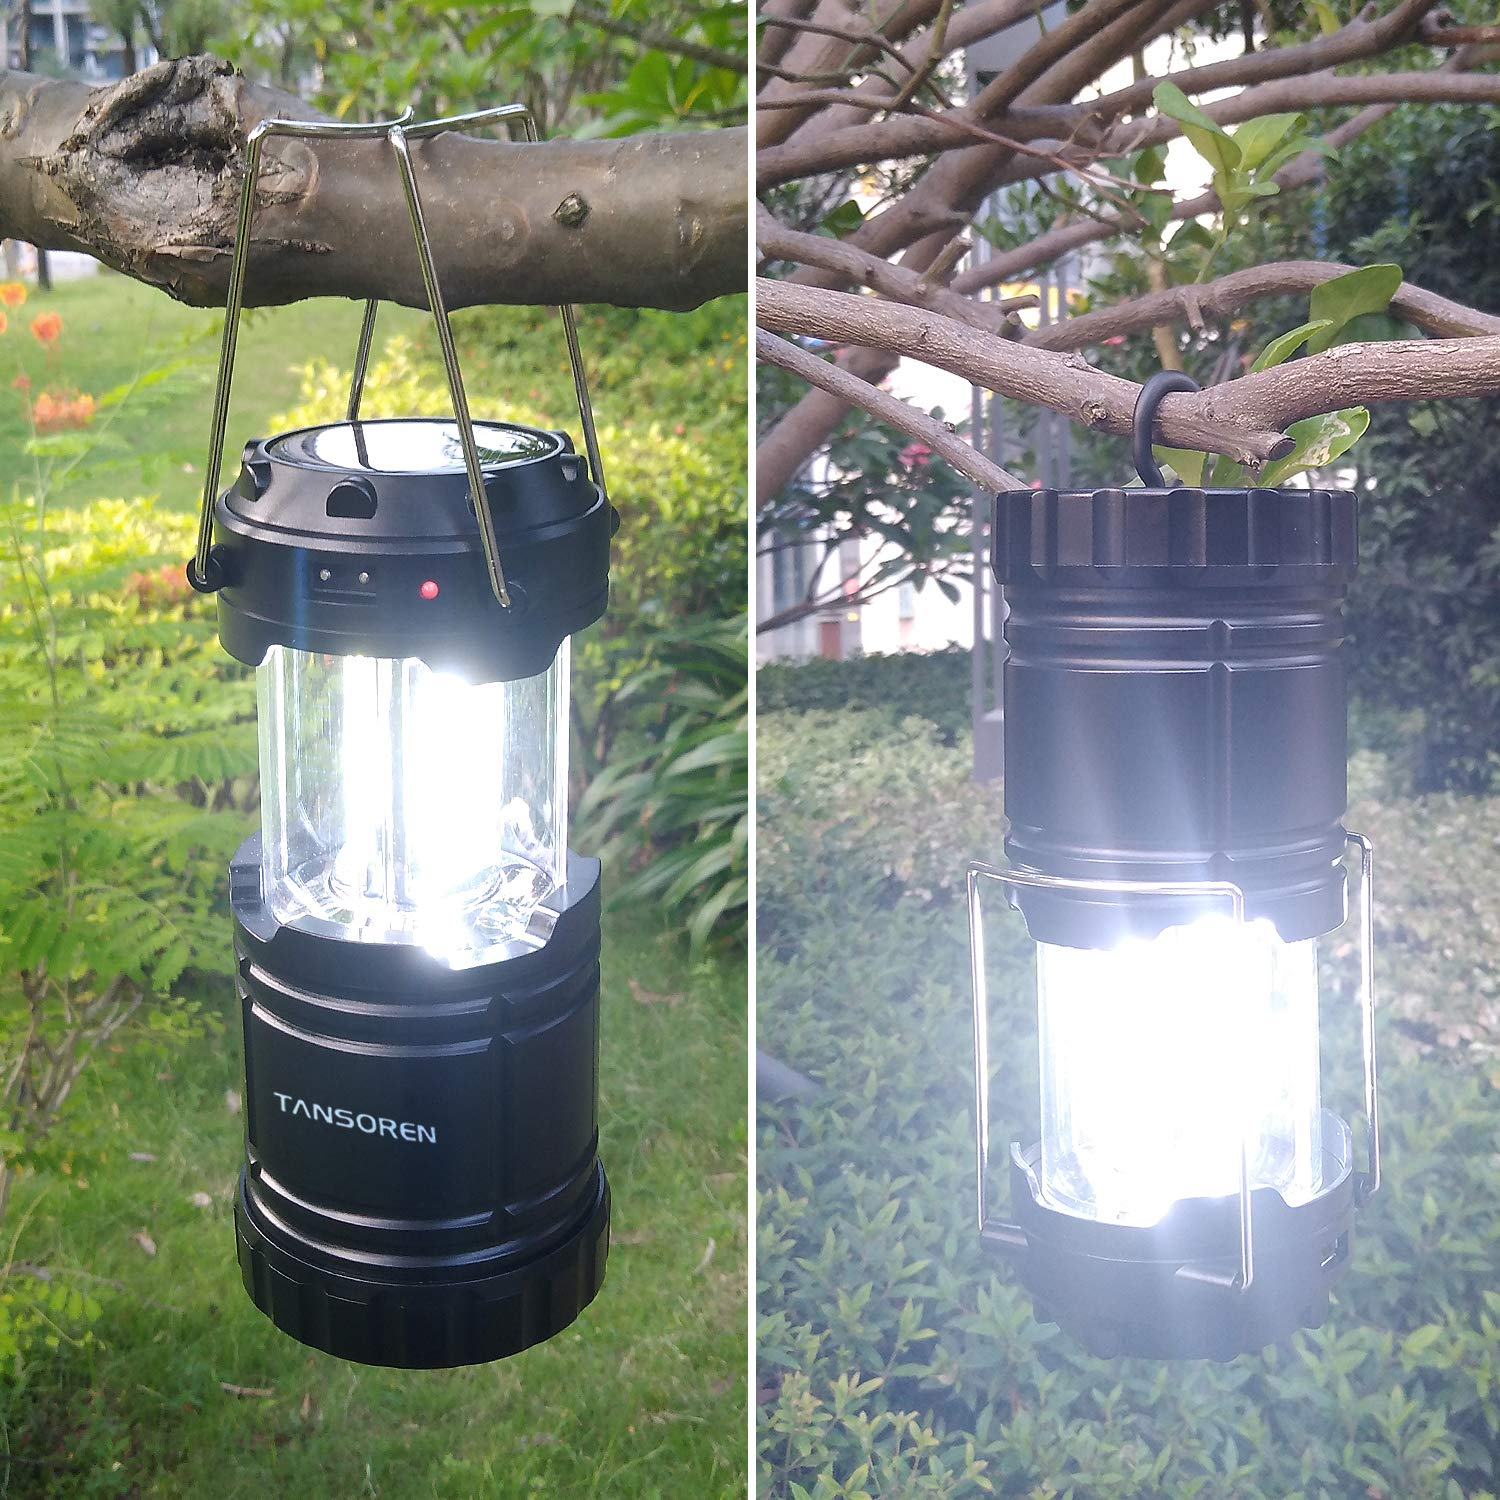 4 Pack Solar USB Rechargeable 3 AA Power Brightest COB LED Camping Lantern with Magnetic Base, Charging for Android, Waterproof Collapsible Emergency LED Light【2018 UPGRADED】 by TANSOREN (Image #6)